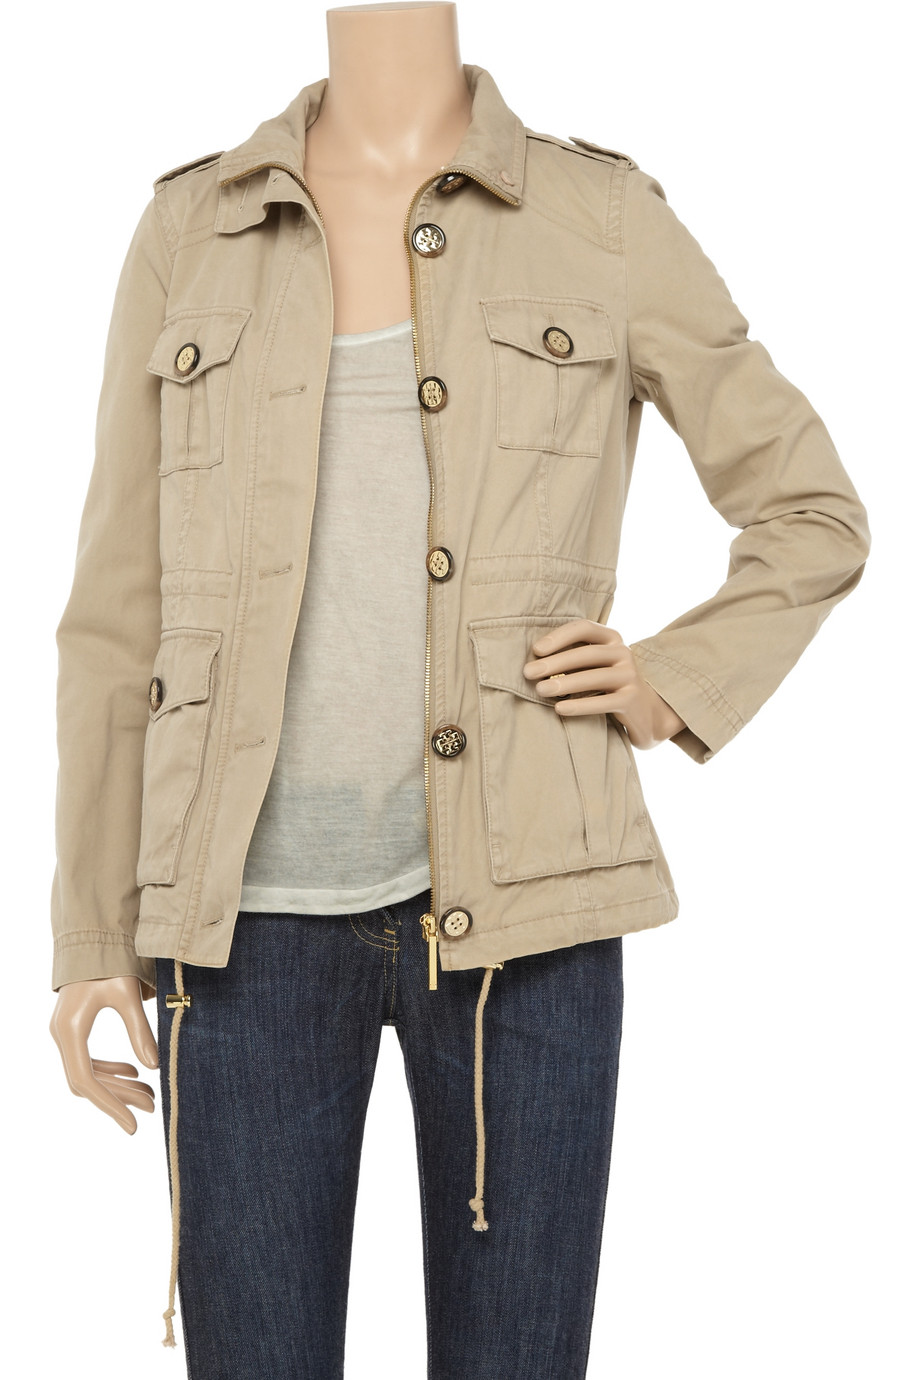 5a848aba2 Tory Burch Sacher Cotton-twill Utility Jacket in Natural - Lyst